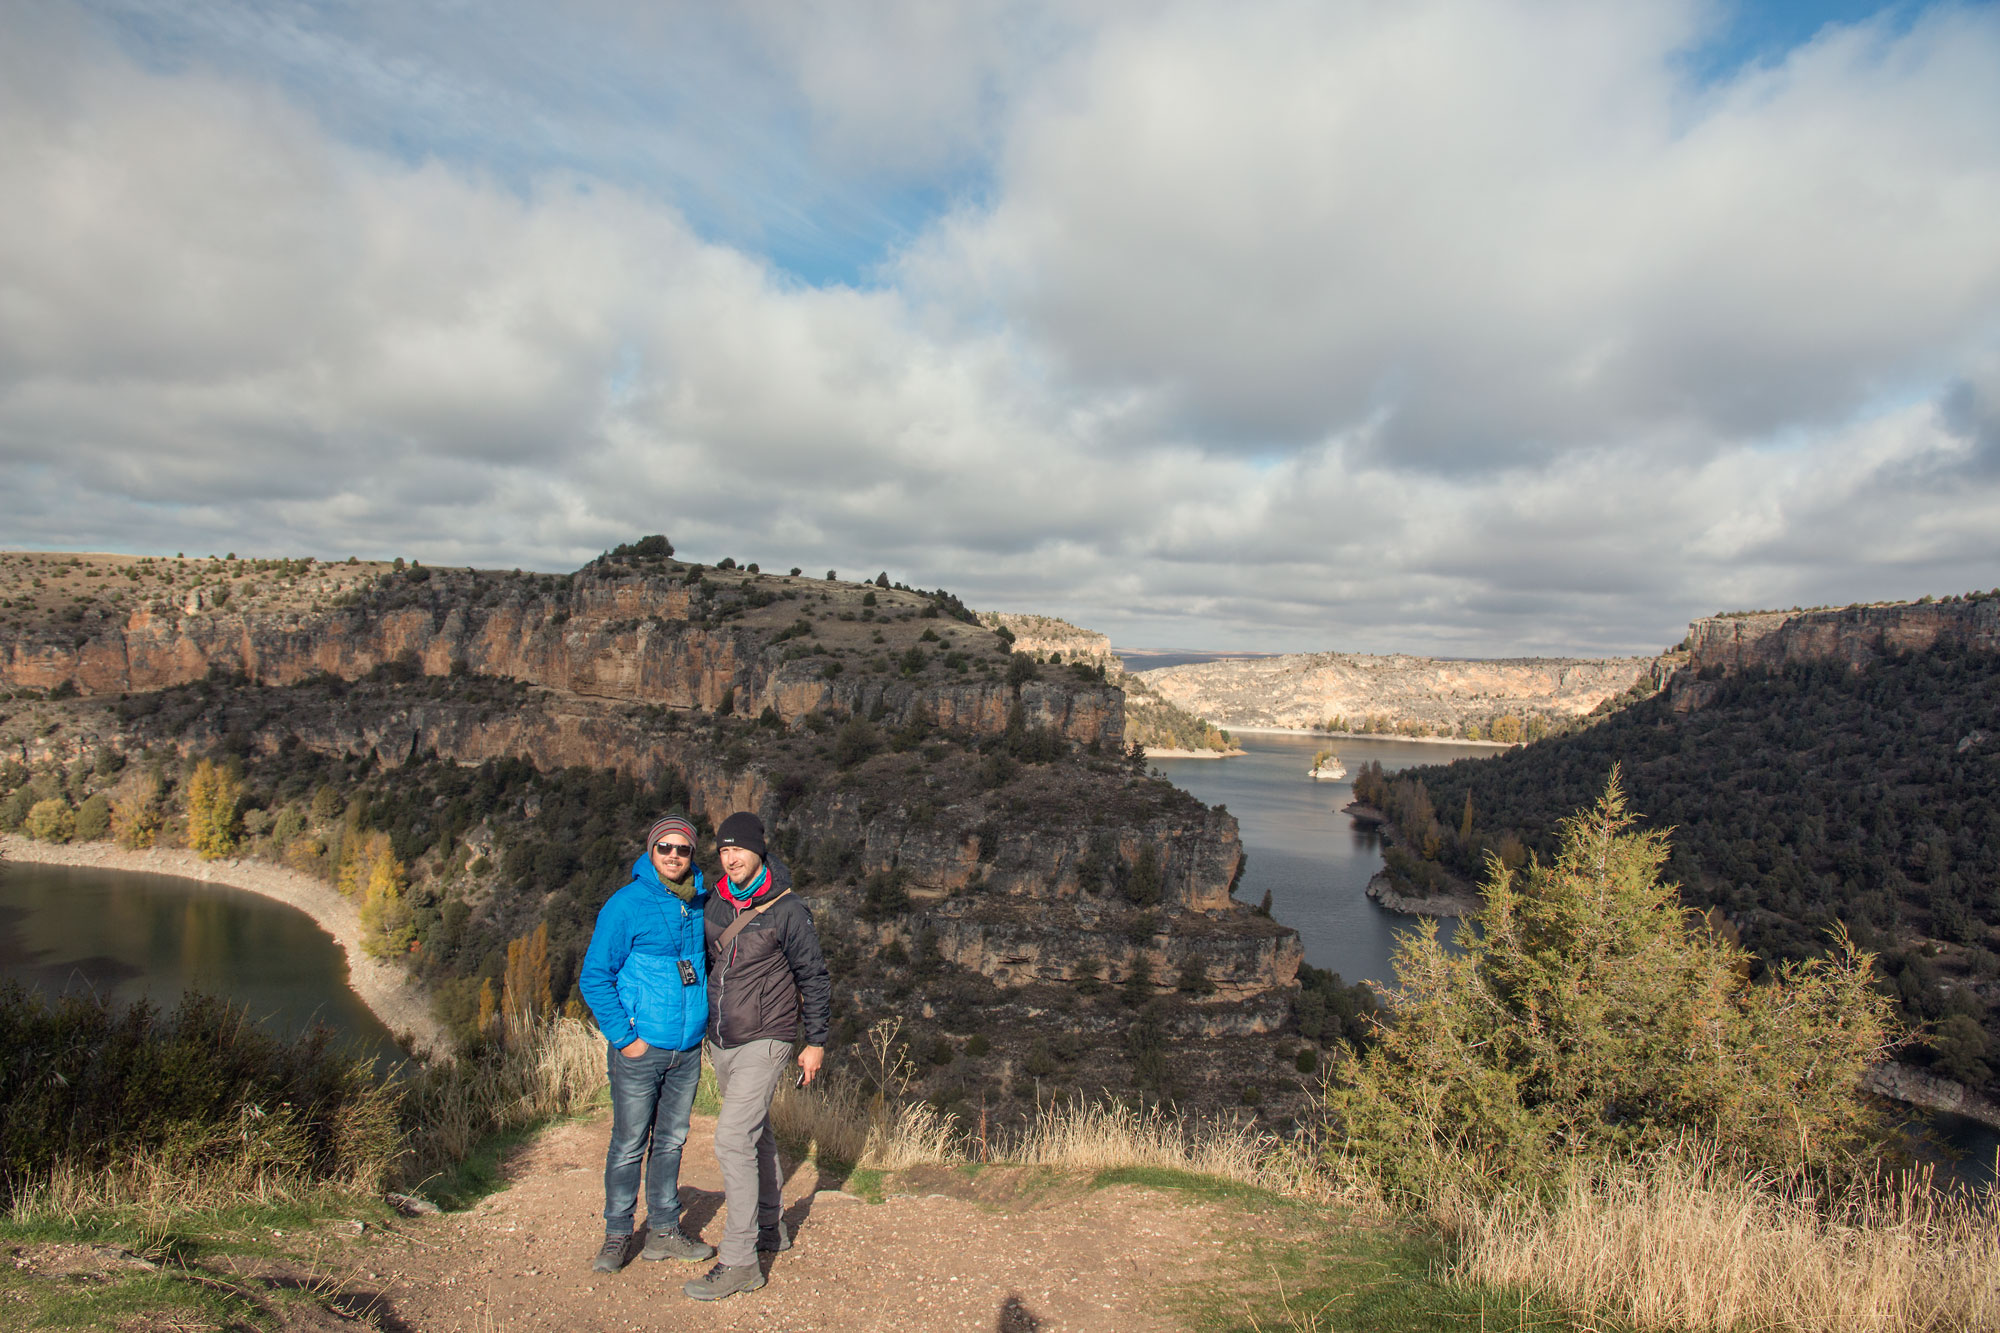 Us on the edge of the gorge at the San Frutos Hermitage, Spain.